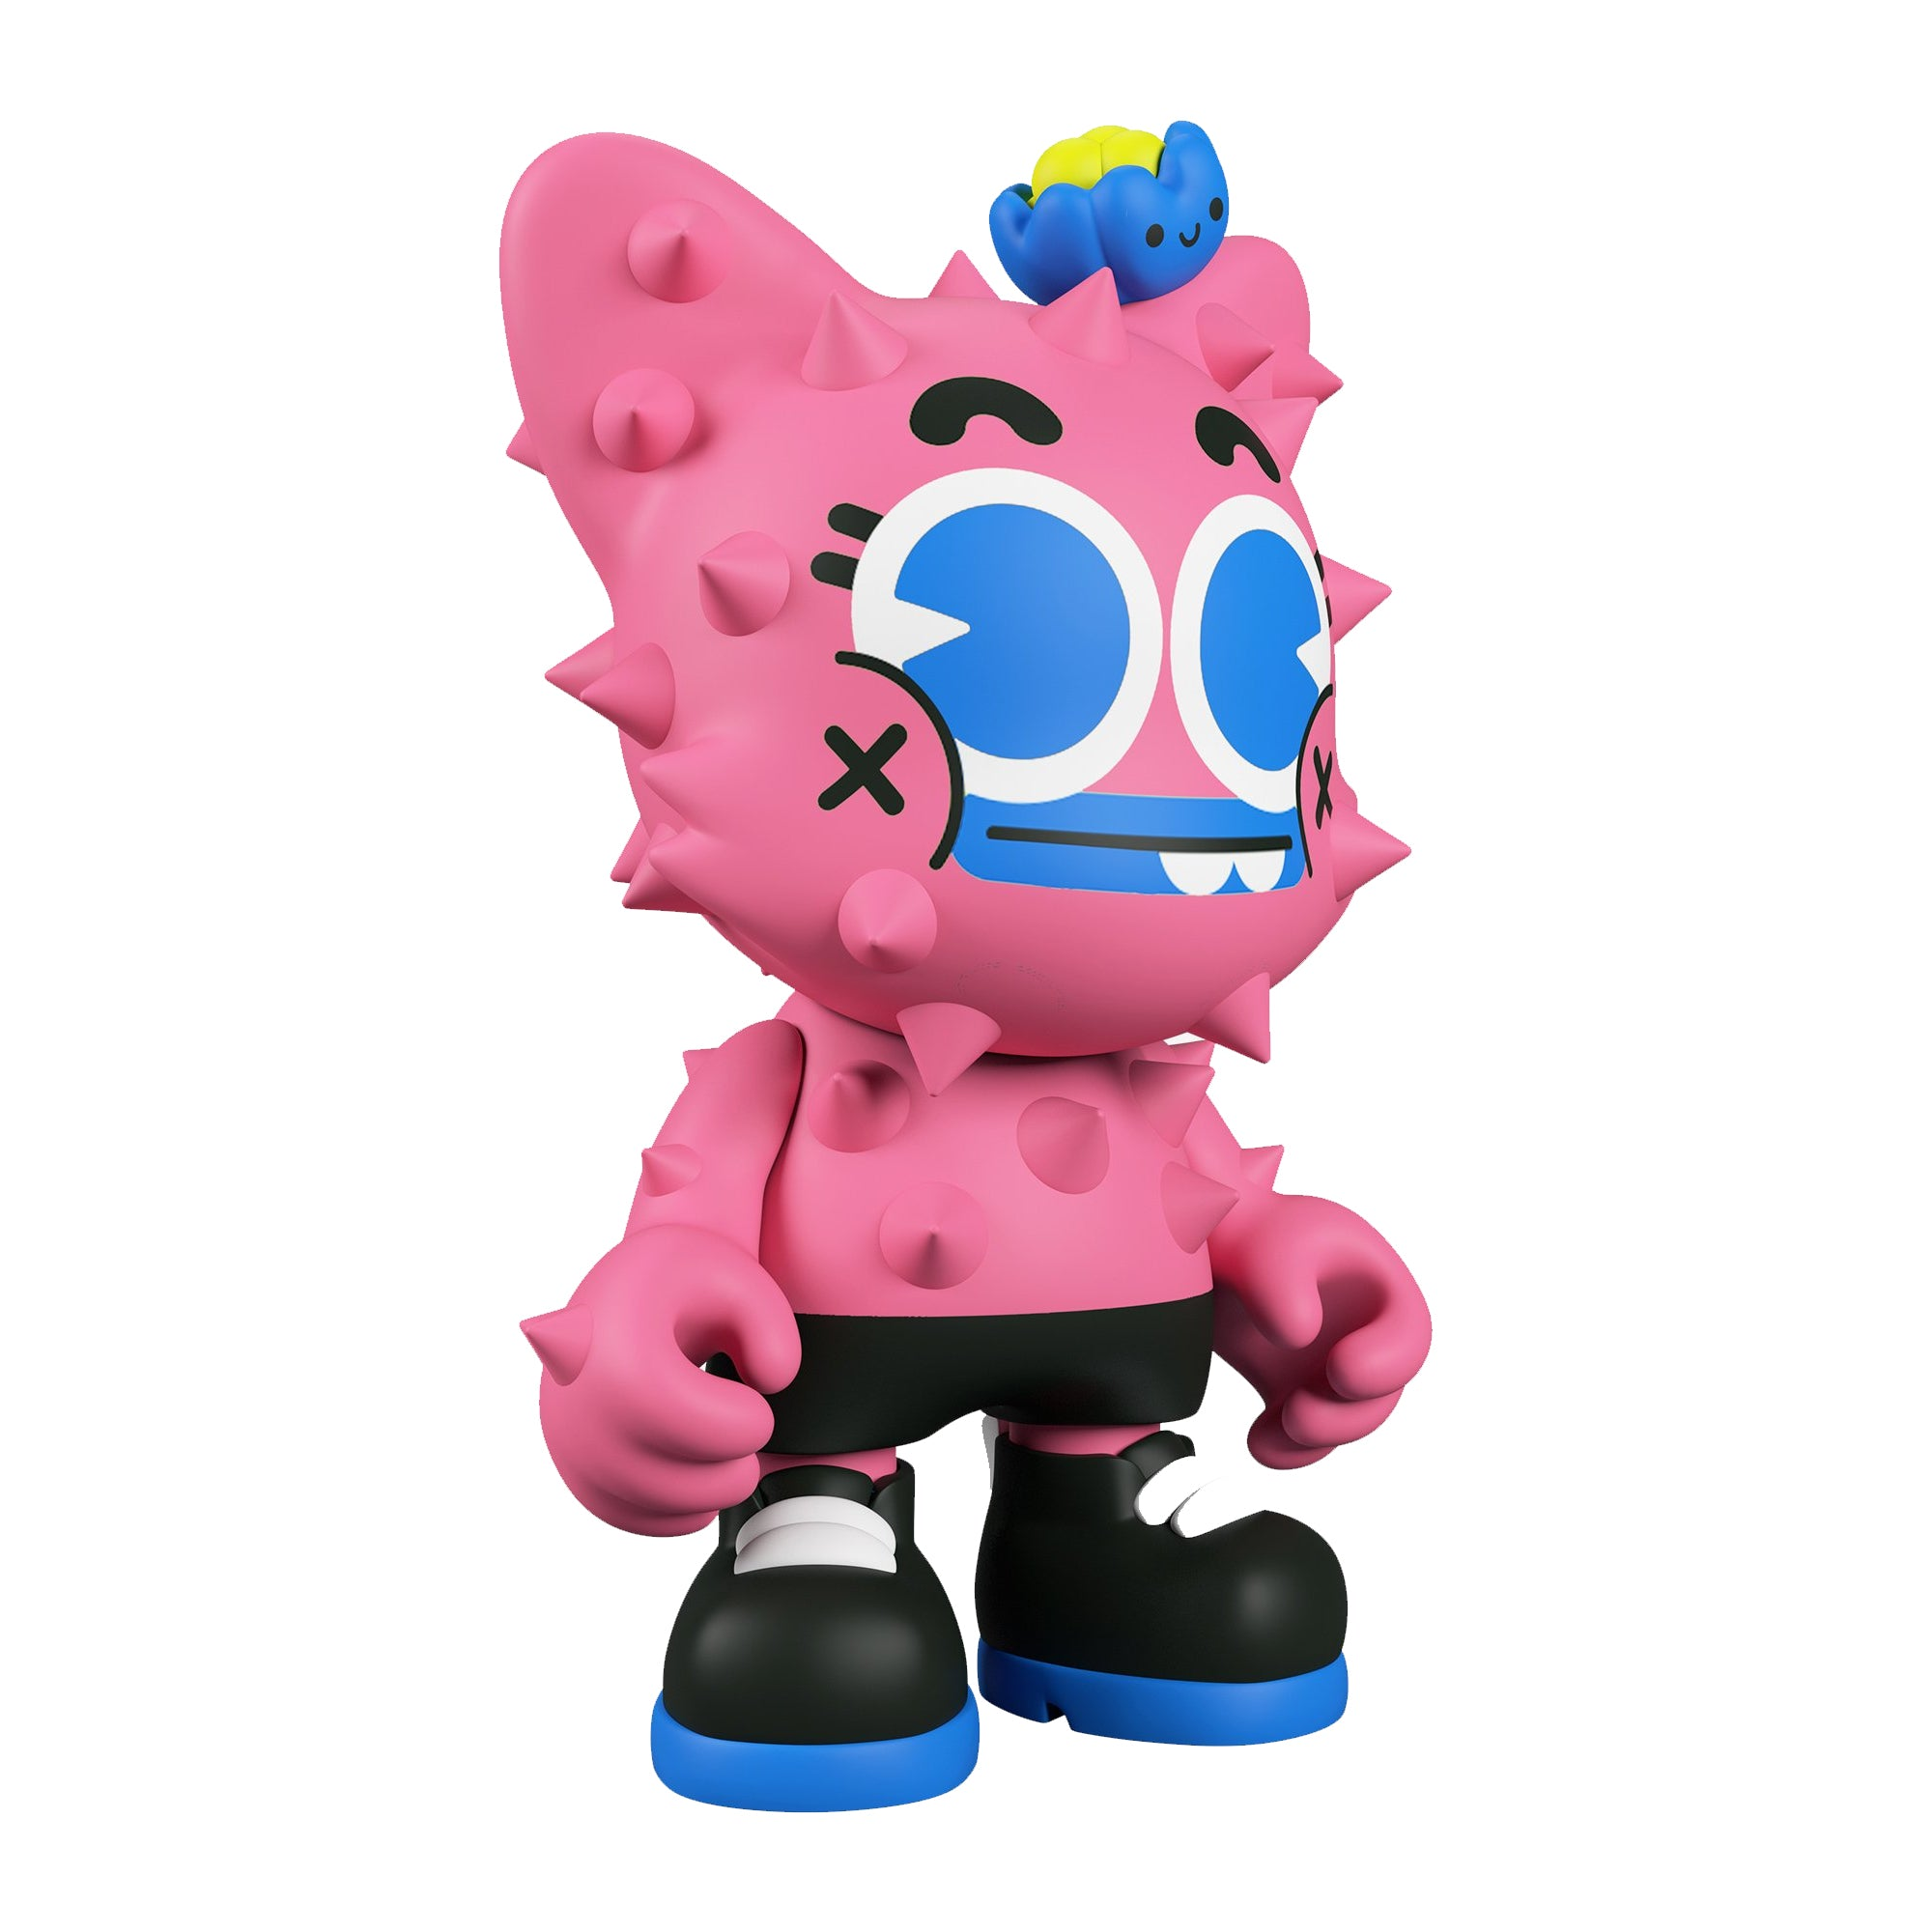 "NOPALITO SUPERJANKY ""PRICKLE ME PINK"" EDITION BY EGC"